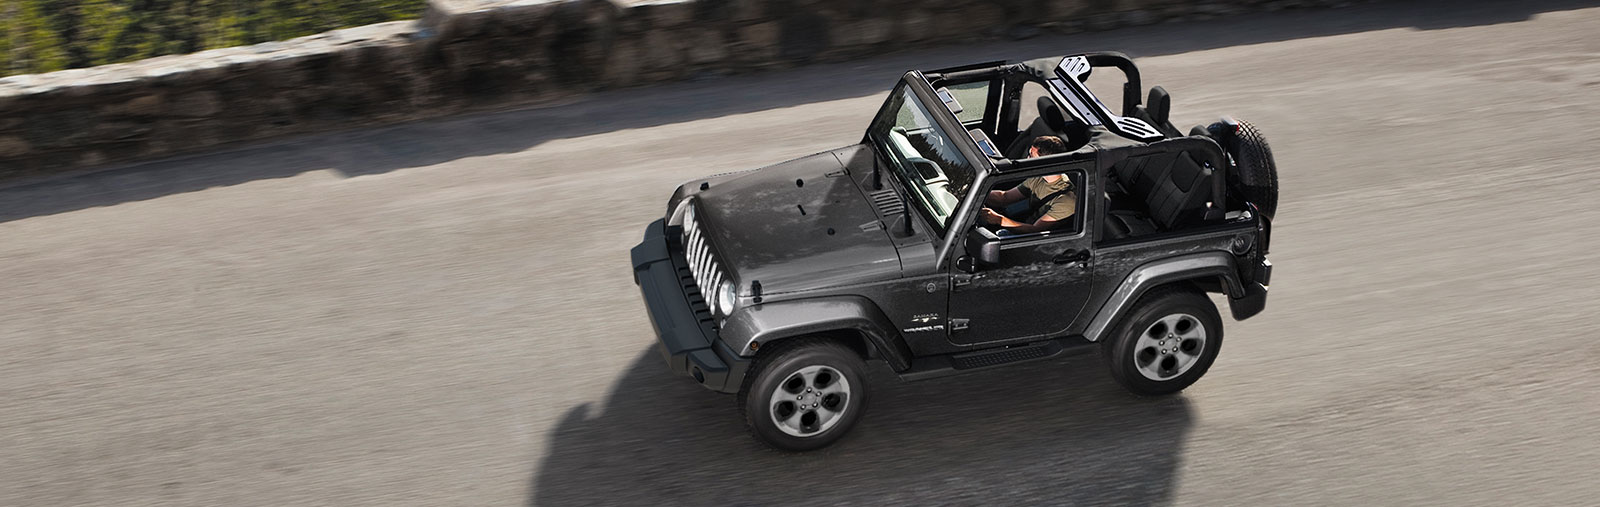 Jeep Wrangler Off Road 4x4 in South Africa